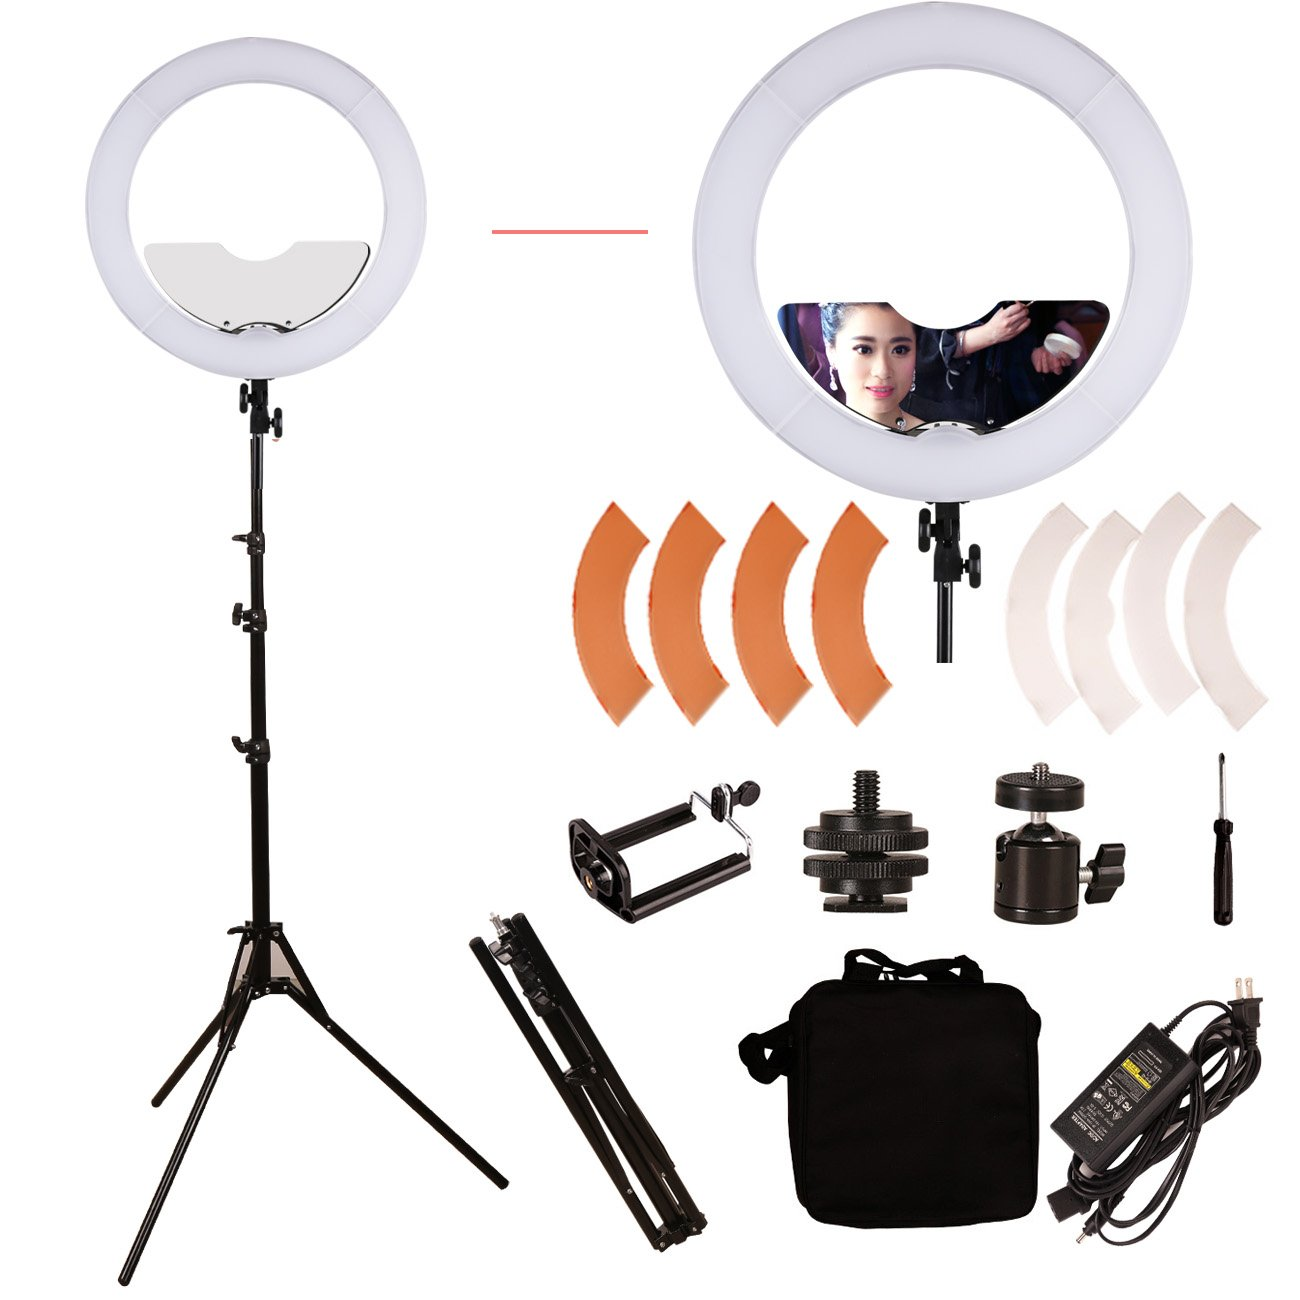 GSKAIWEN 18 inch 240 LED Ring Light Mirror Make Up Beauty Light with Stand for Wedding Photography, Beauty Light, Night Video by GSKAIWEN